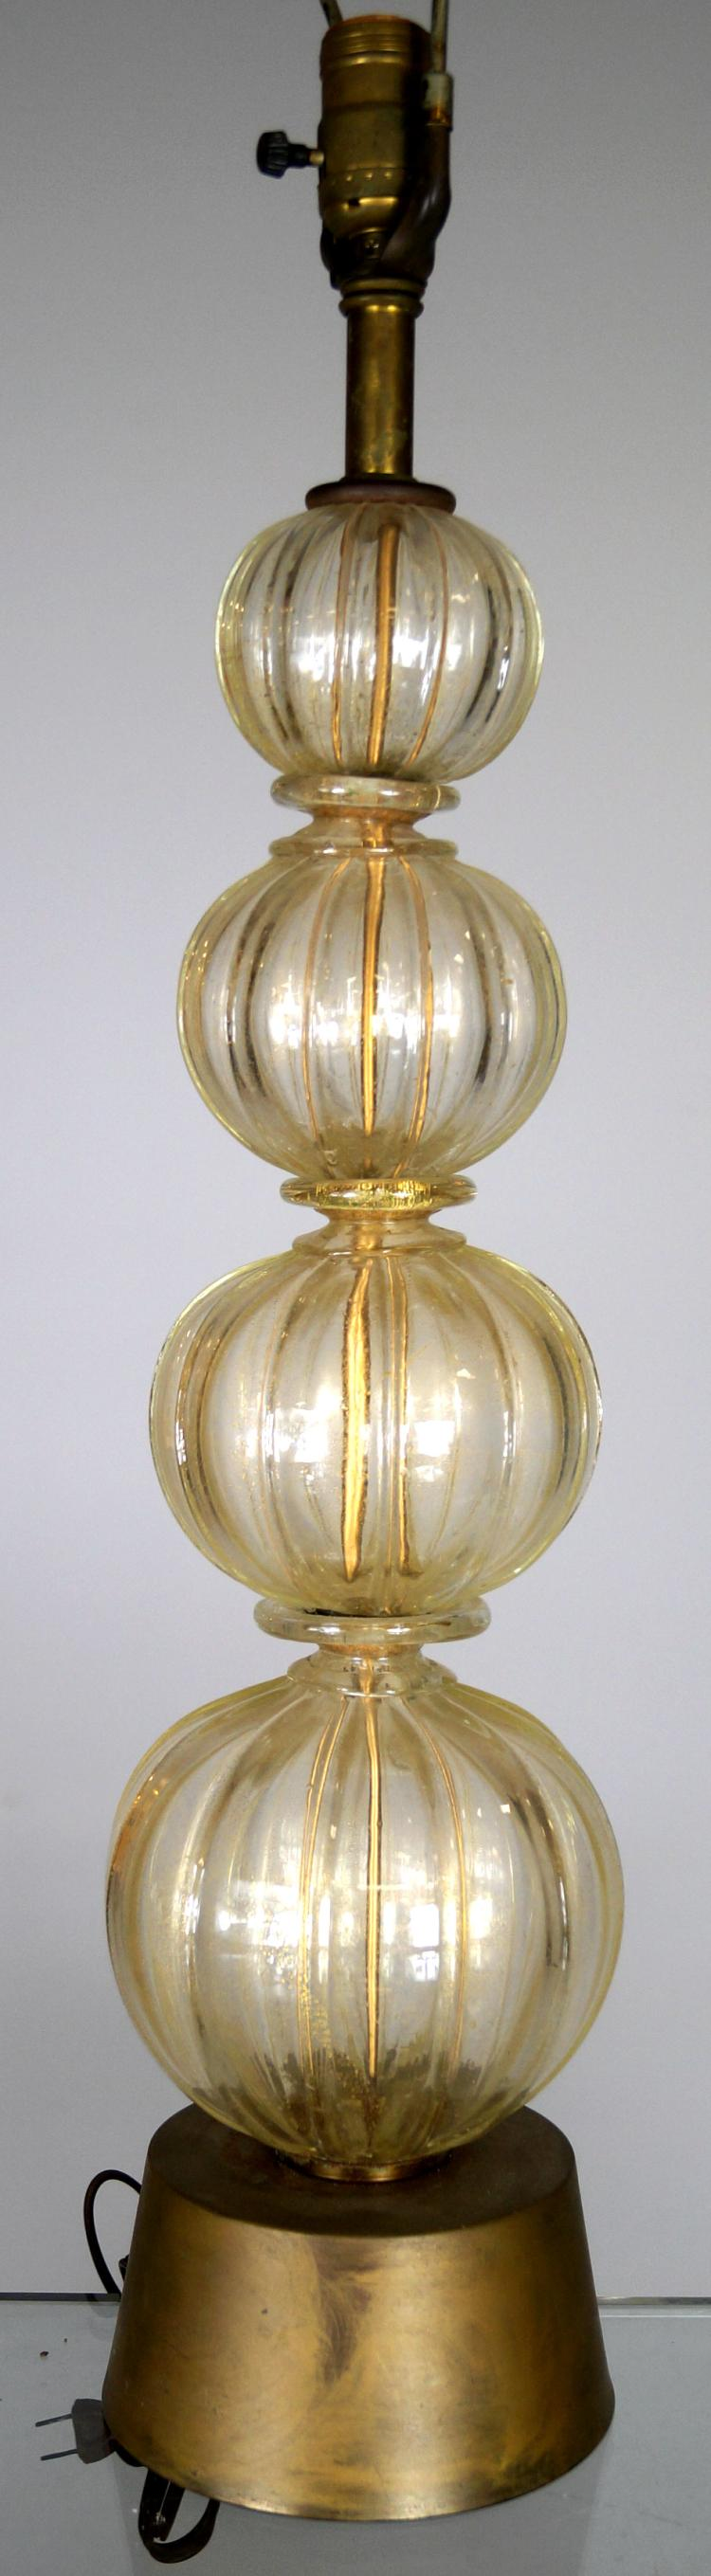 MID-CENTURY VENETIAN GLASS TABLE LAMP. HEIGHT 22